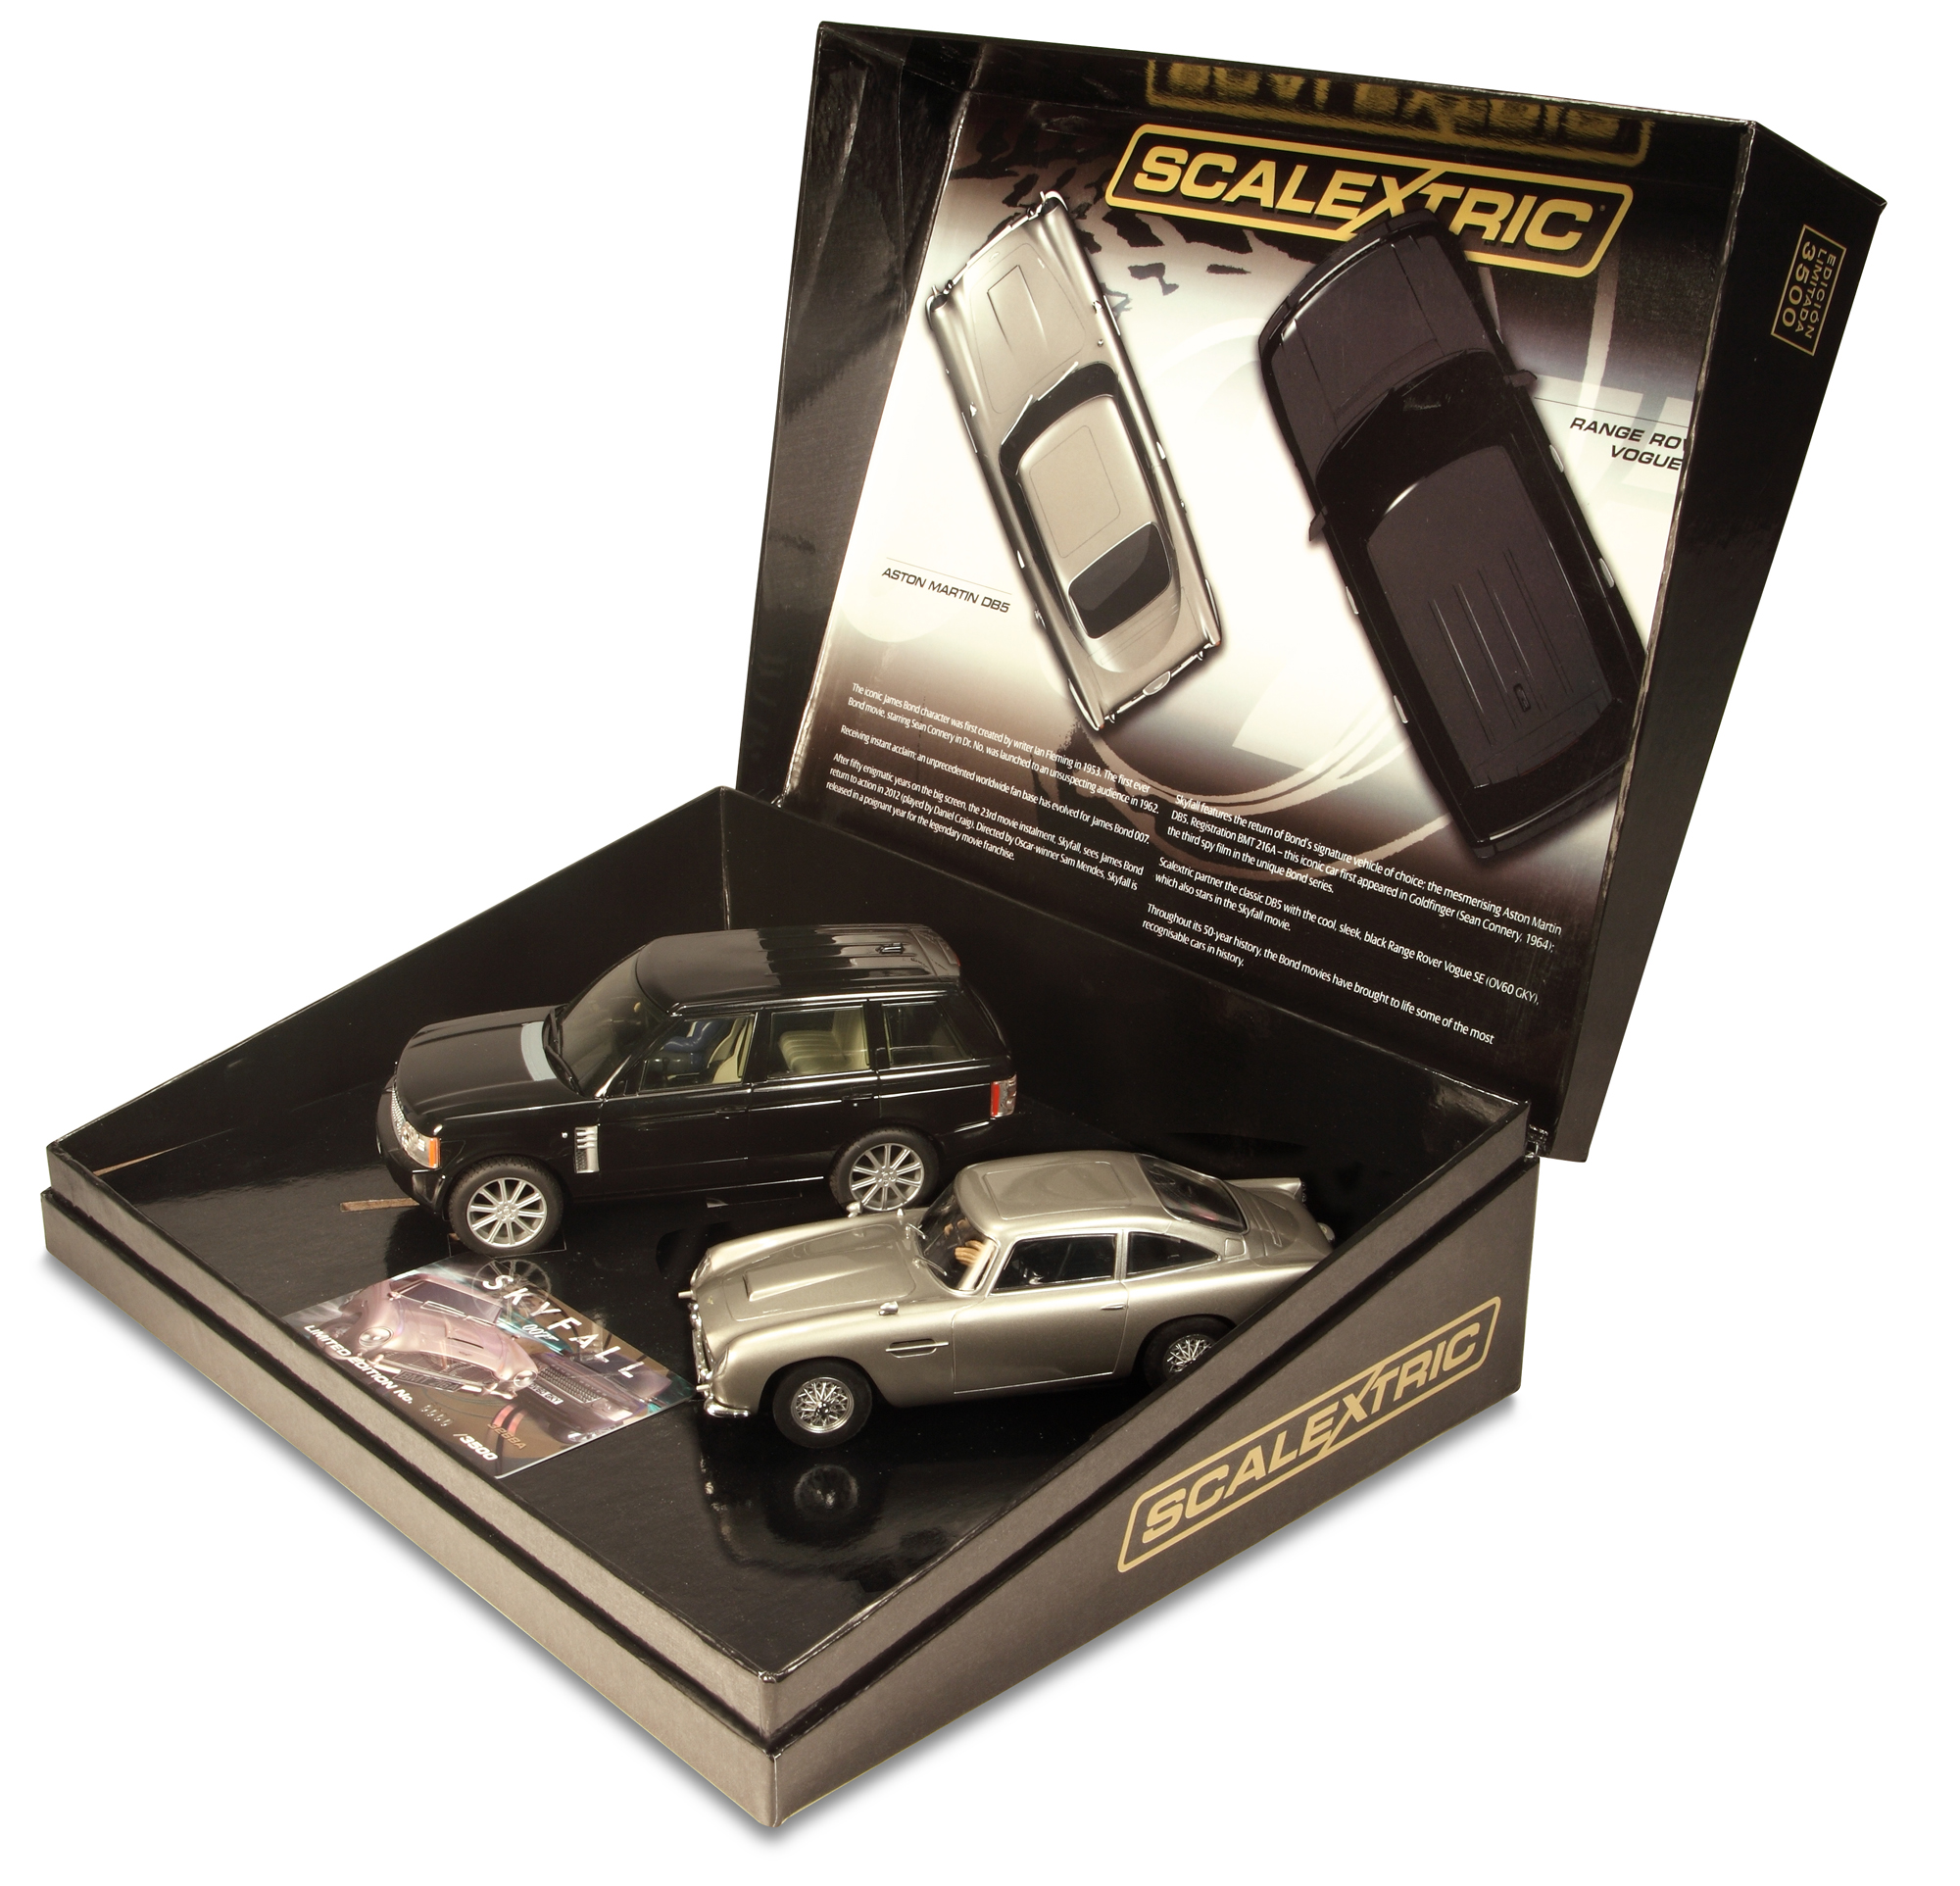 Aston Martin DB5 Skyfall Scalextric Set Launched